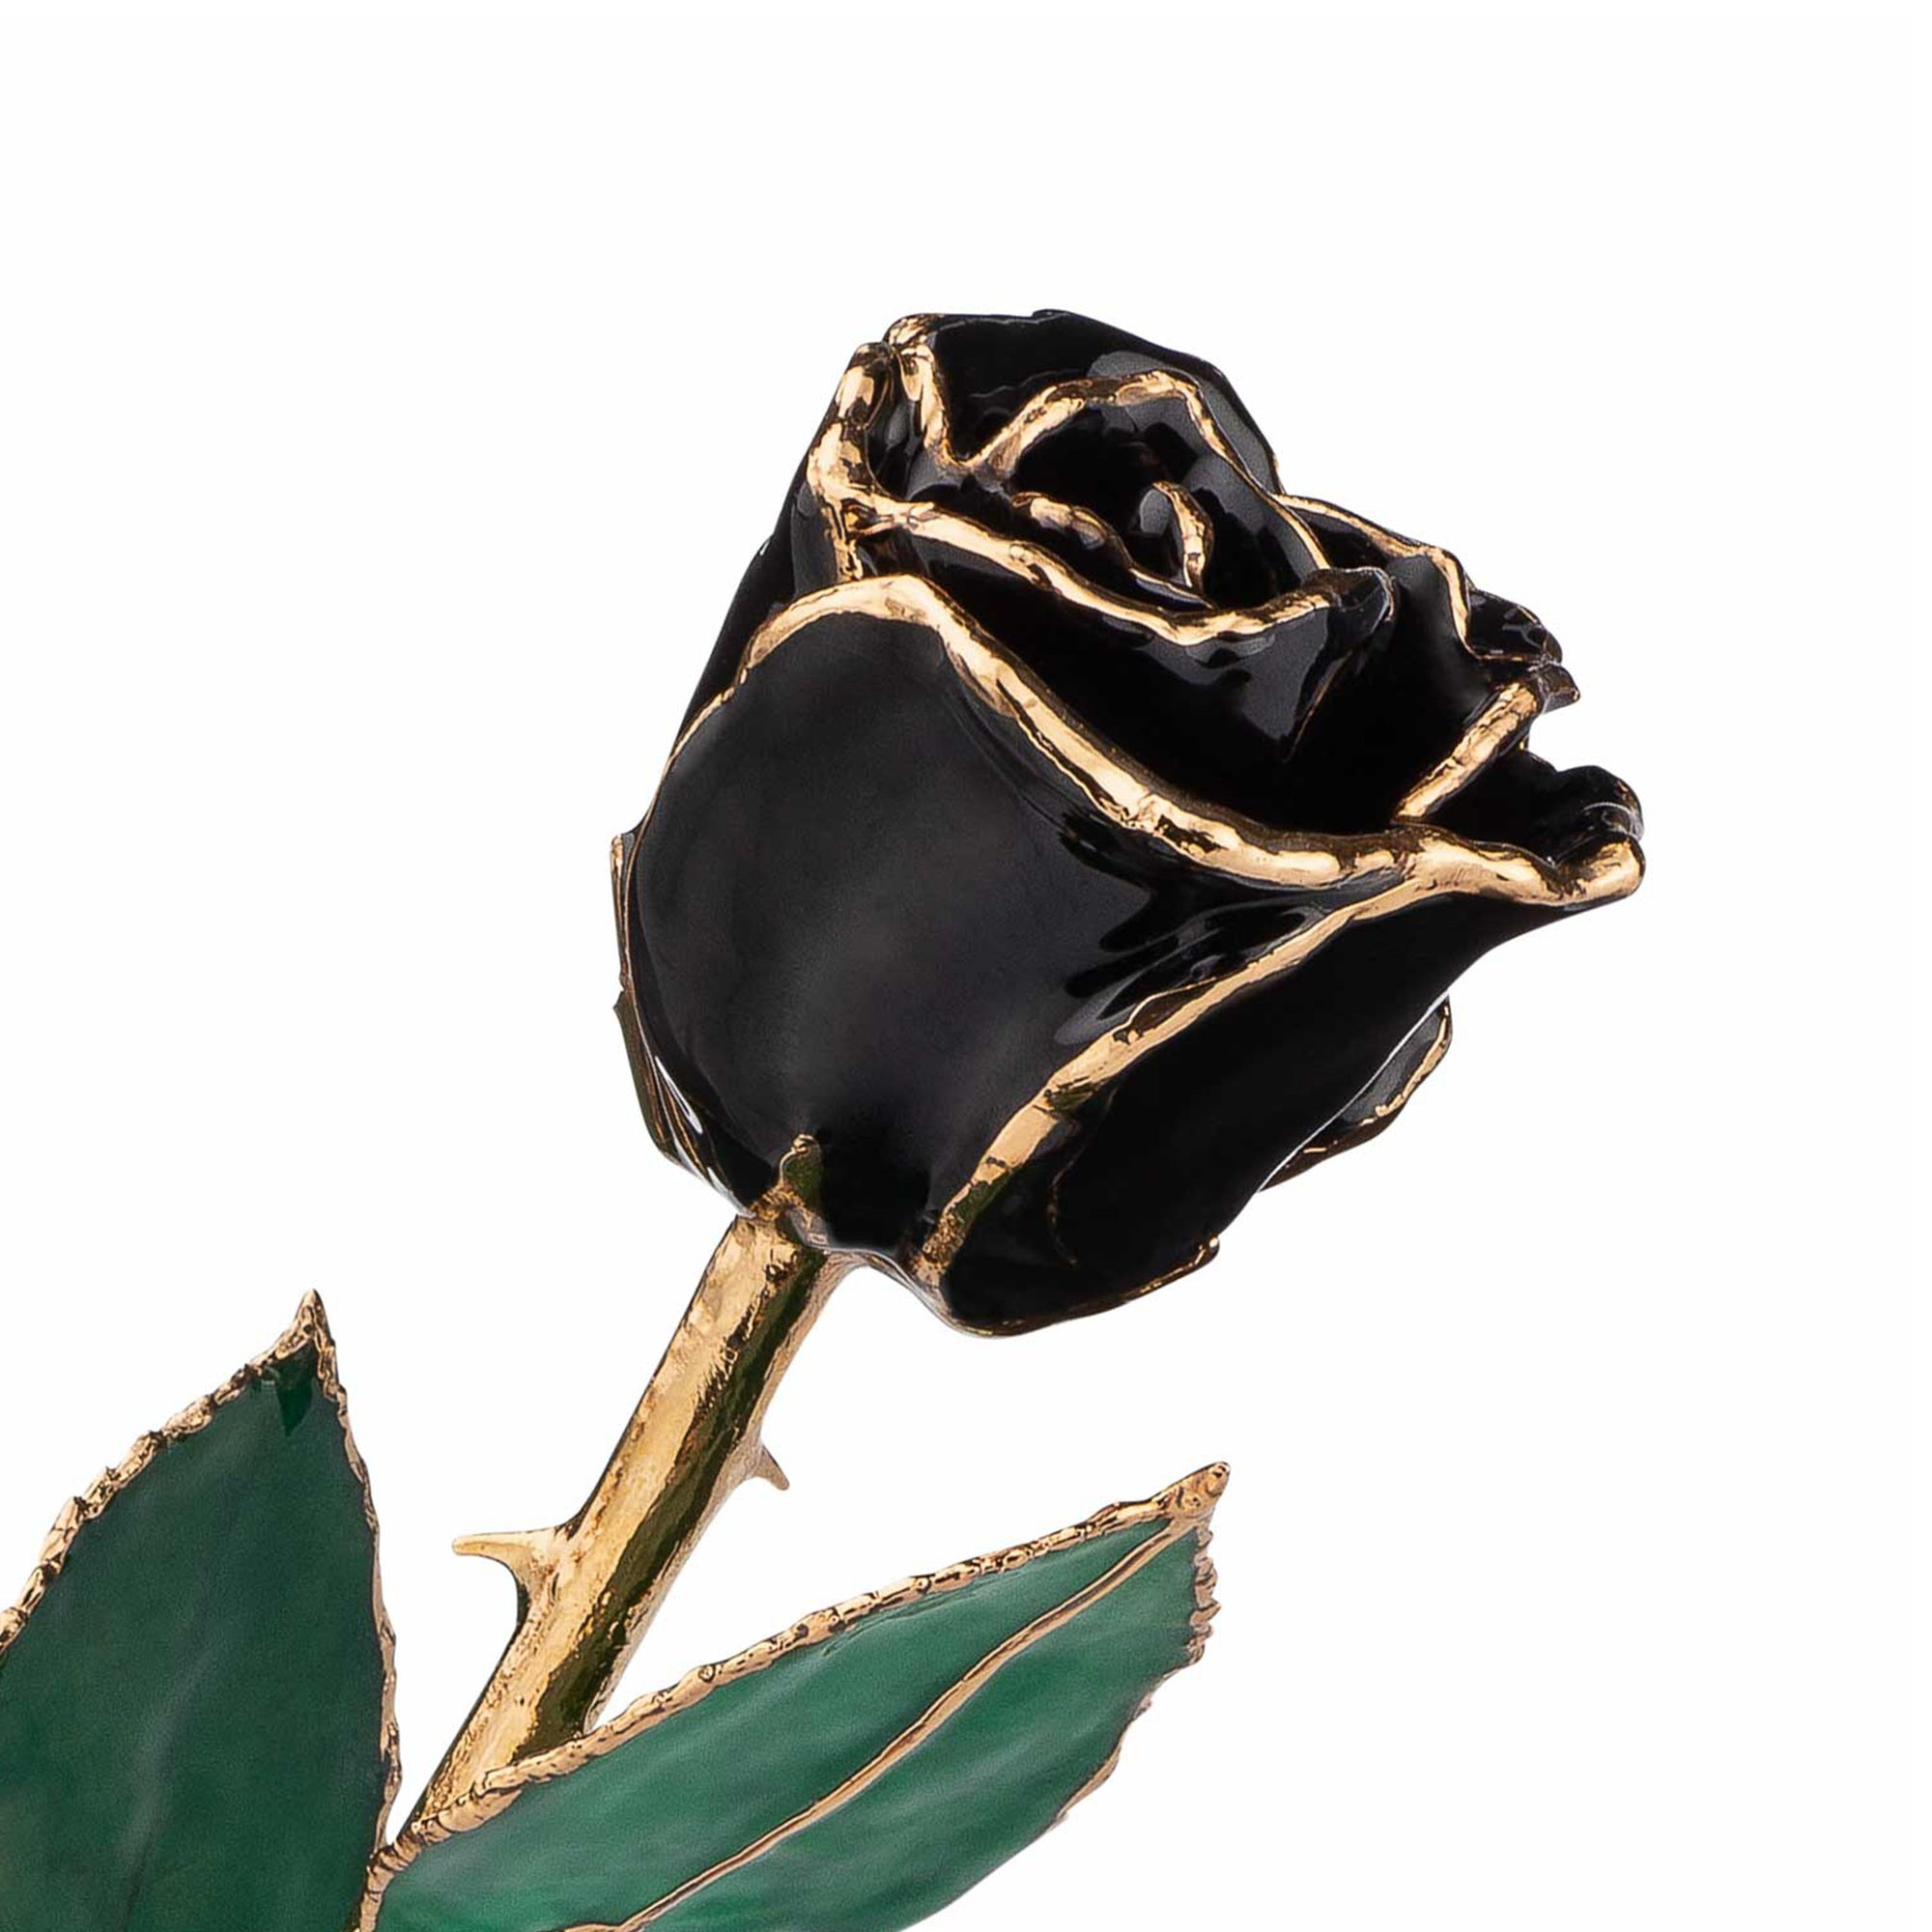 24K Gold Trimmed Forever Rose in Black Color with View of Stem, Leaves, and Rose Petals and Showing Detail of Gold Trim